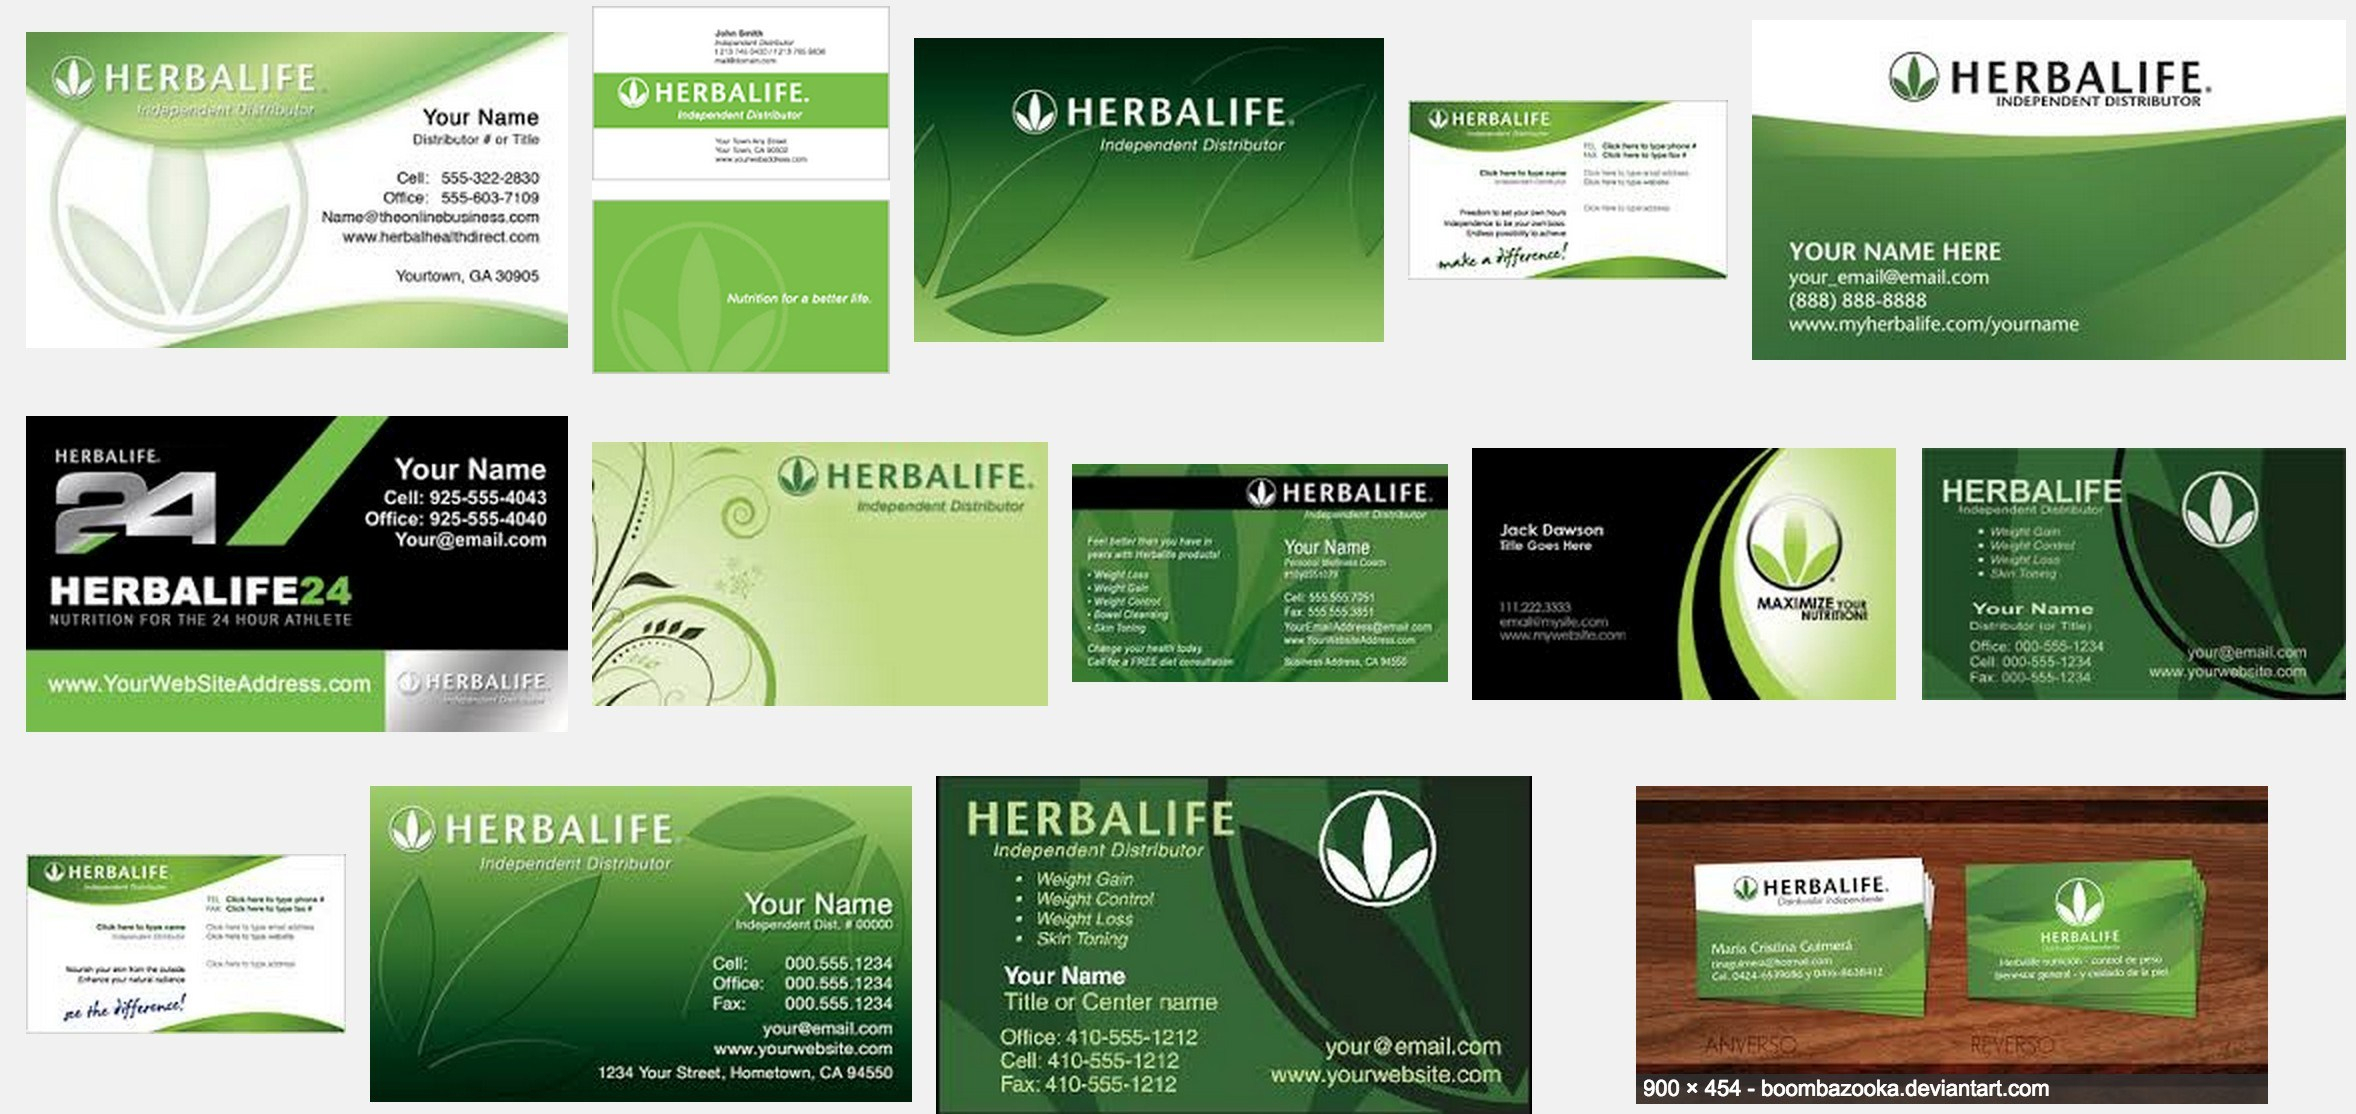 Advocare Business Card Template Herbalife Cards Uk New Order Within Advocare Business Card Template